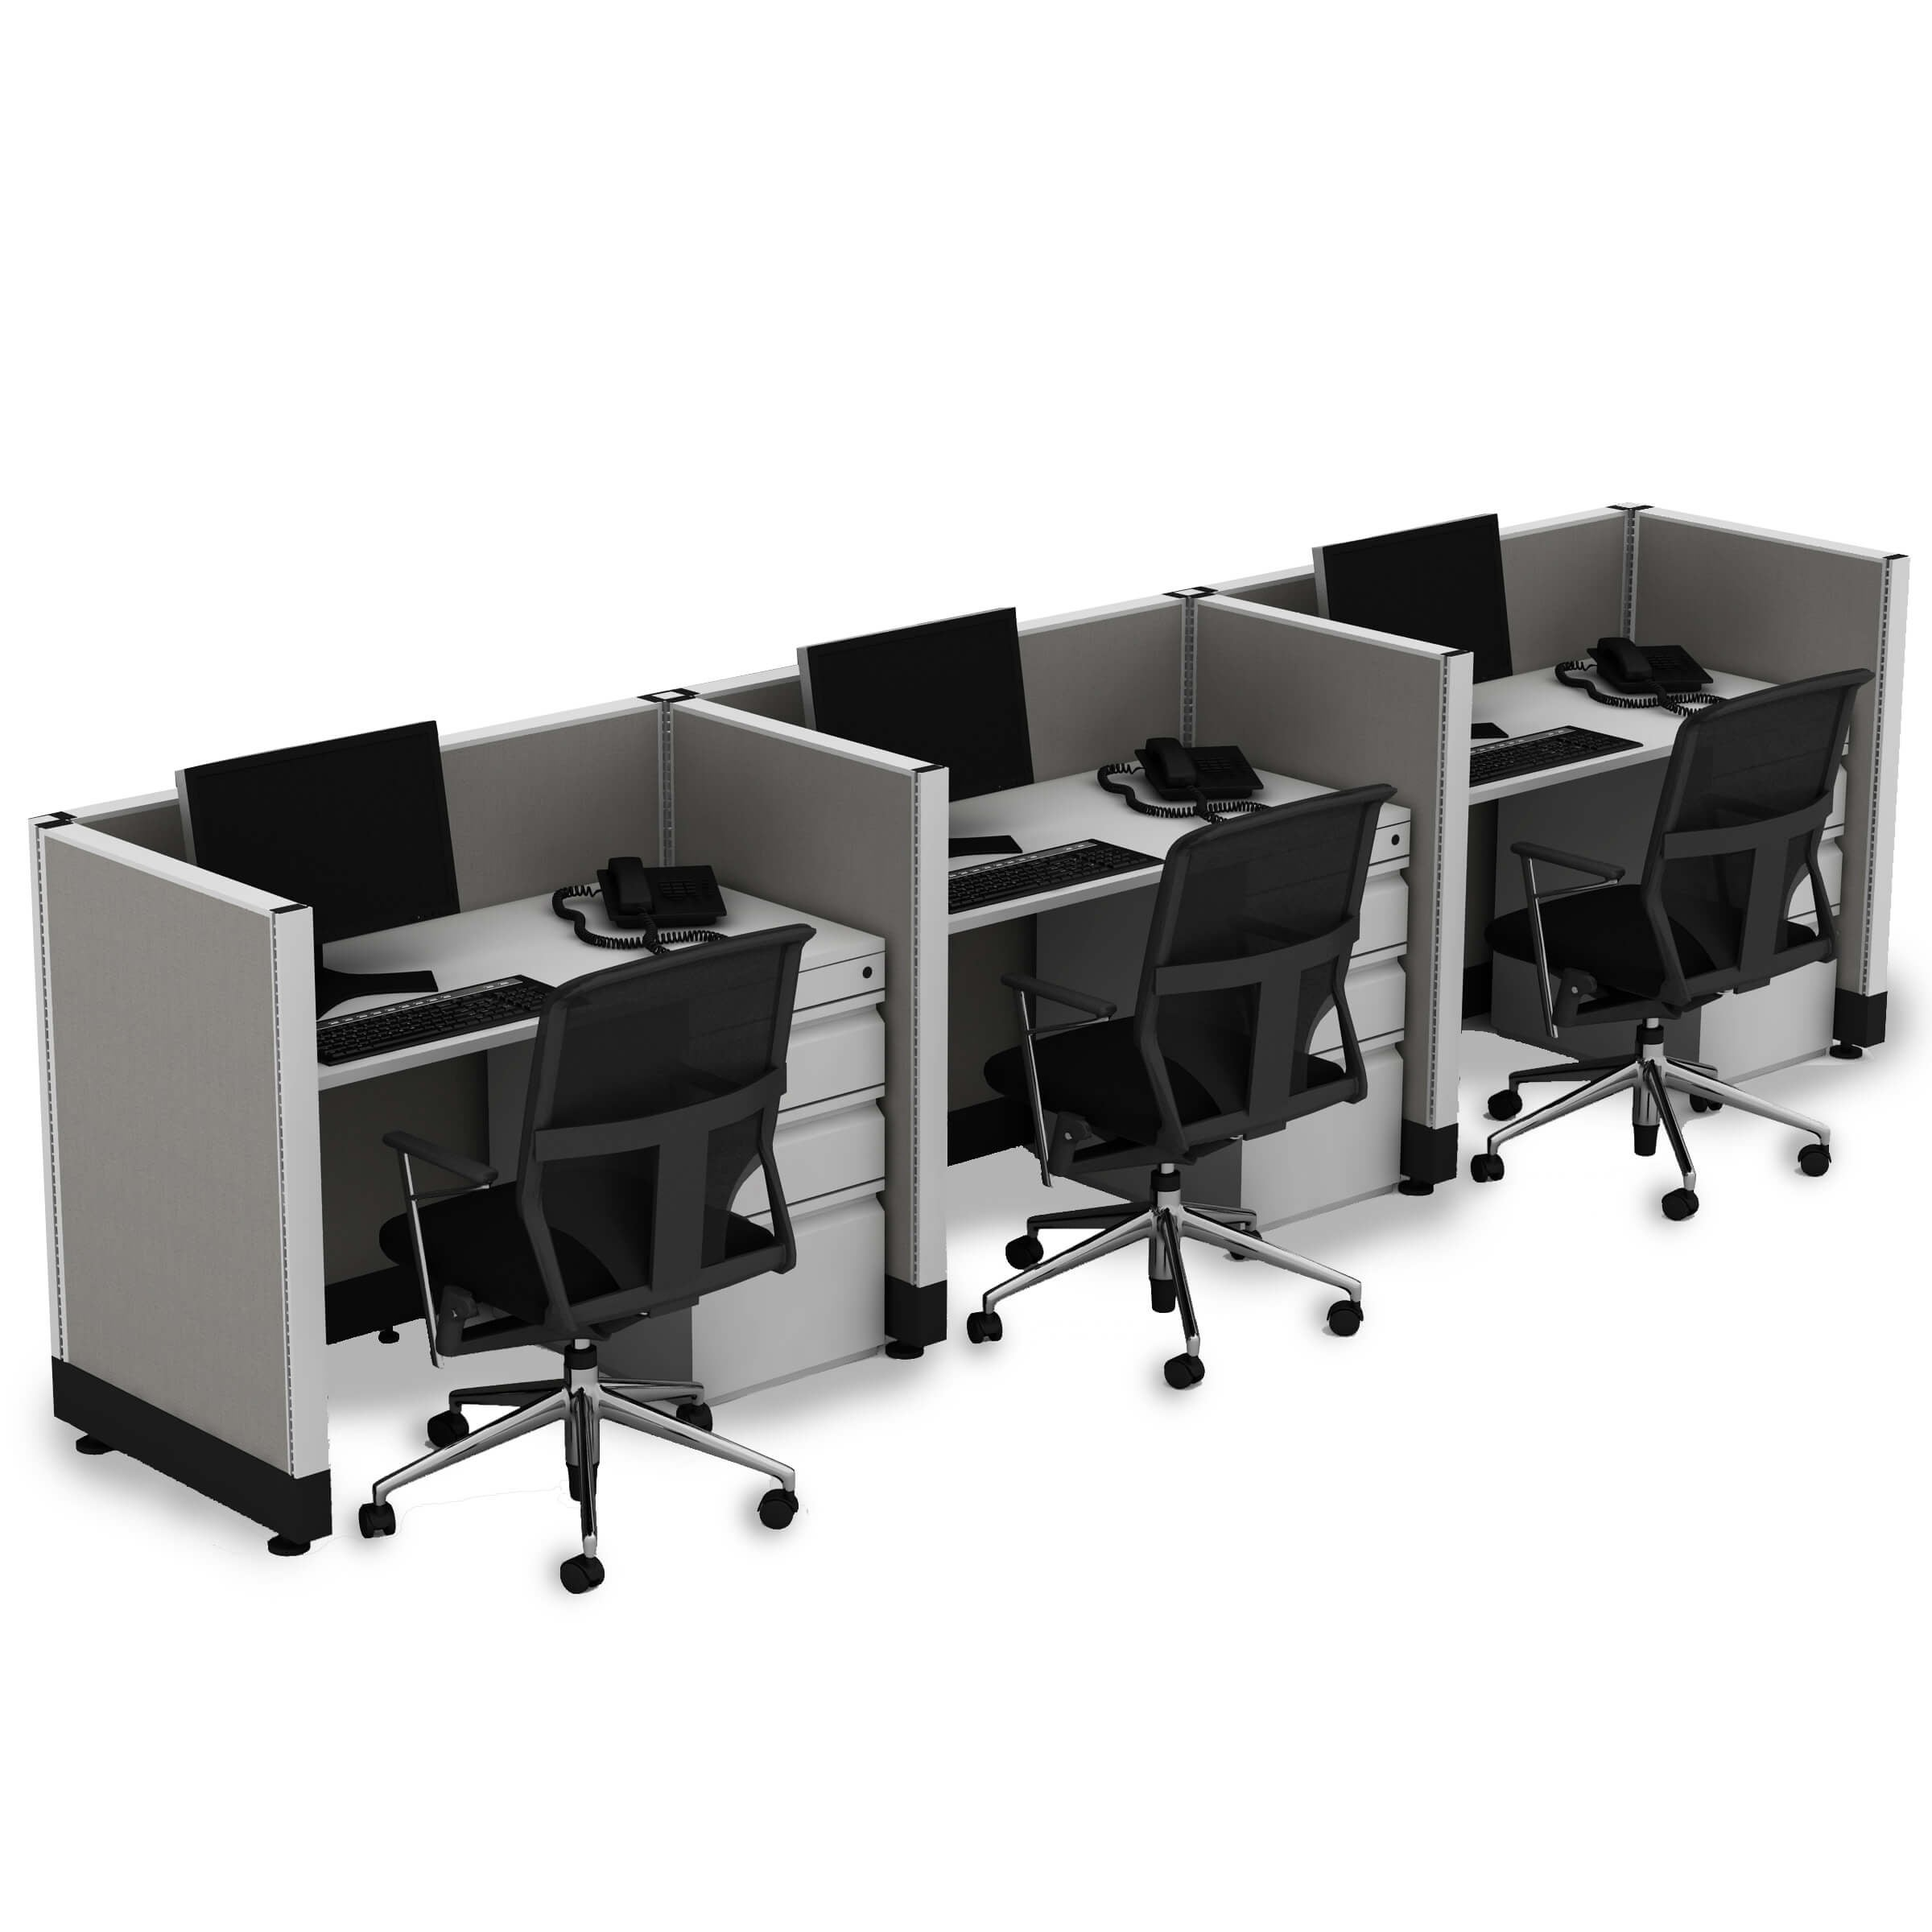 Small Office Cubicles 39H 3pack Inline Unpowered (2x3 - White Desk White Paint - Assembly Required)